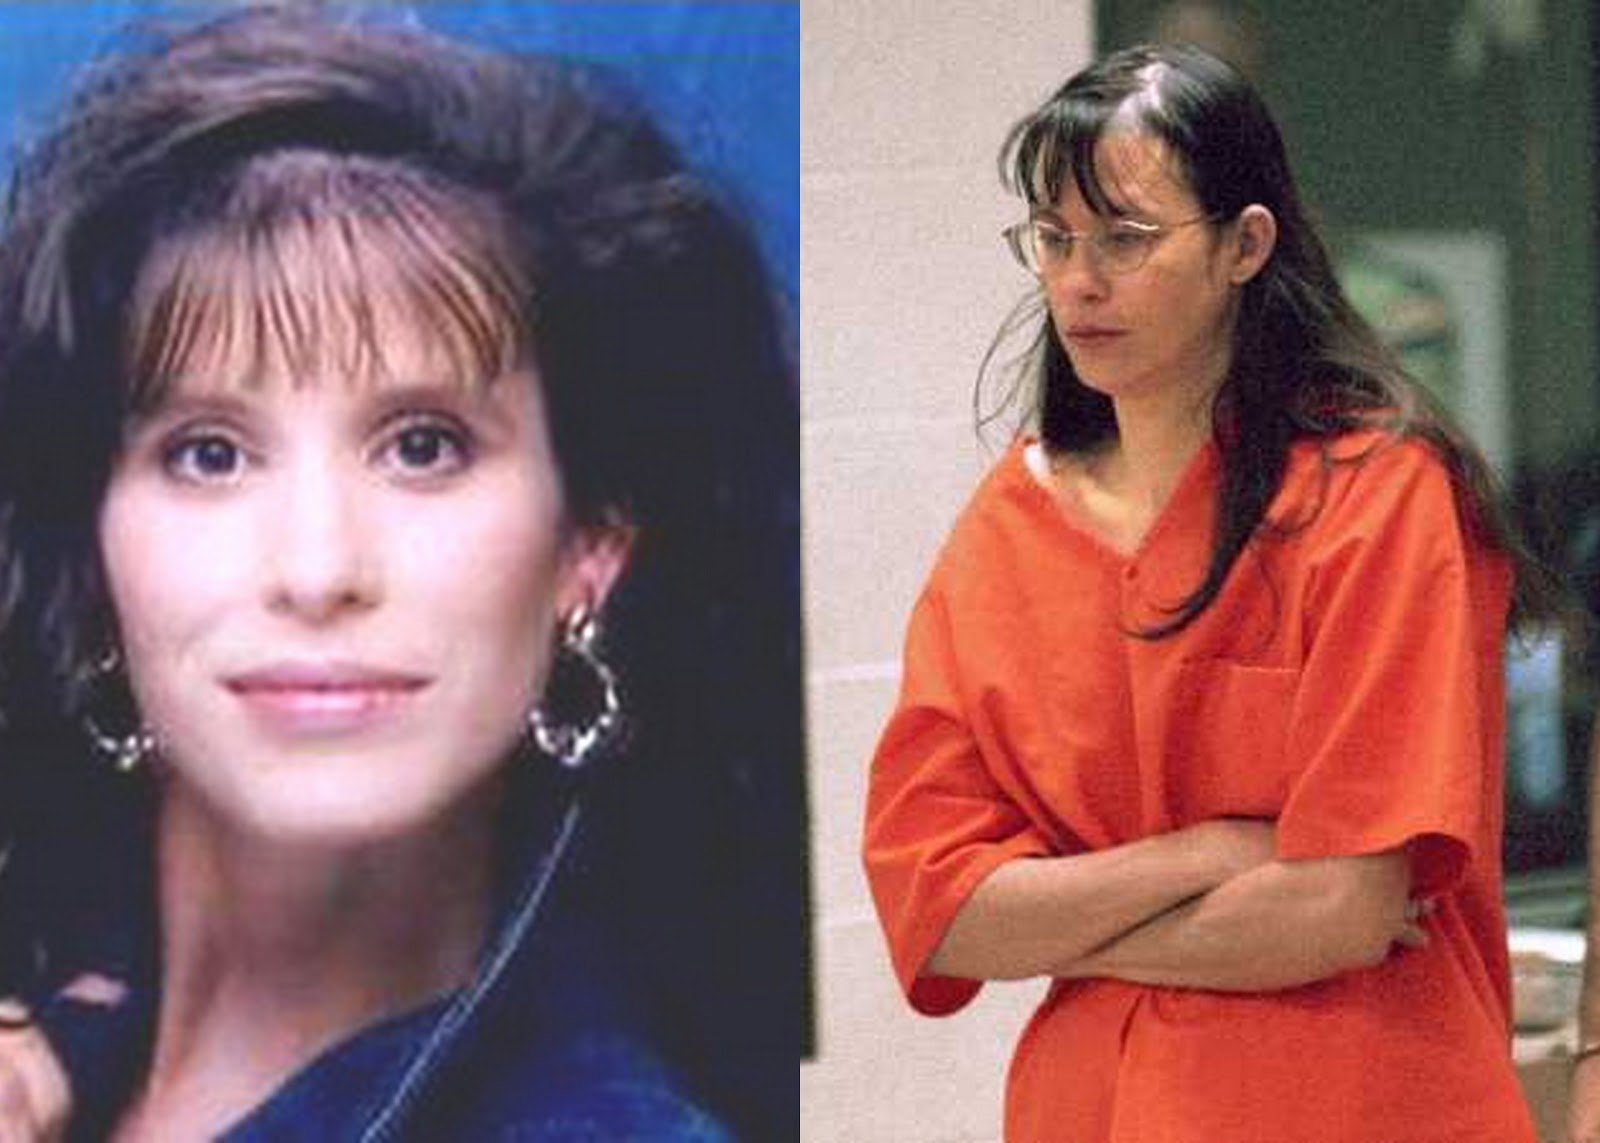 an introduction to the life of andrea yates Analysis of the case of andrea yates essay march 2013 introduction this report who are protected from many of the cruel facts of life feel scared.